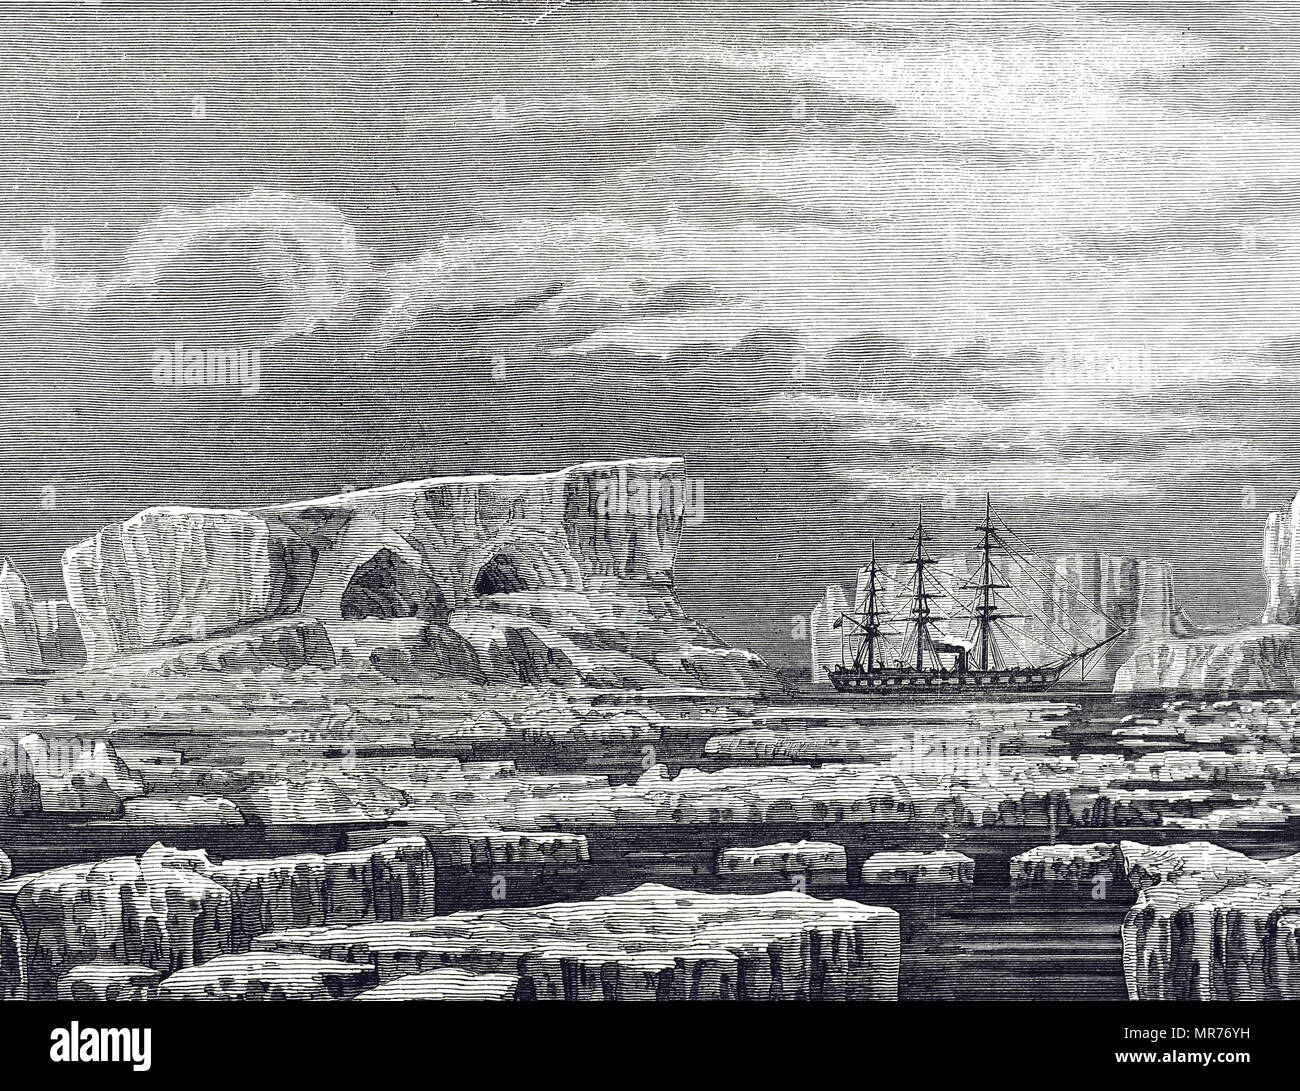 Engraving depicting the HMS Challenger among icebergs in the Antarctic. Dated 19th century - Stock Image